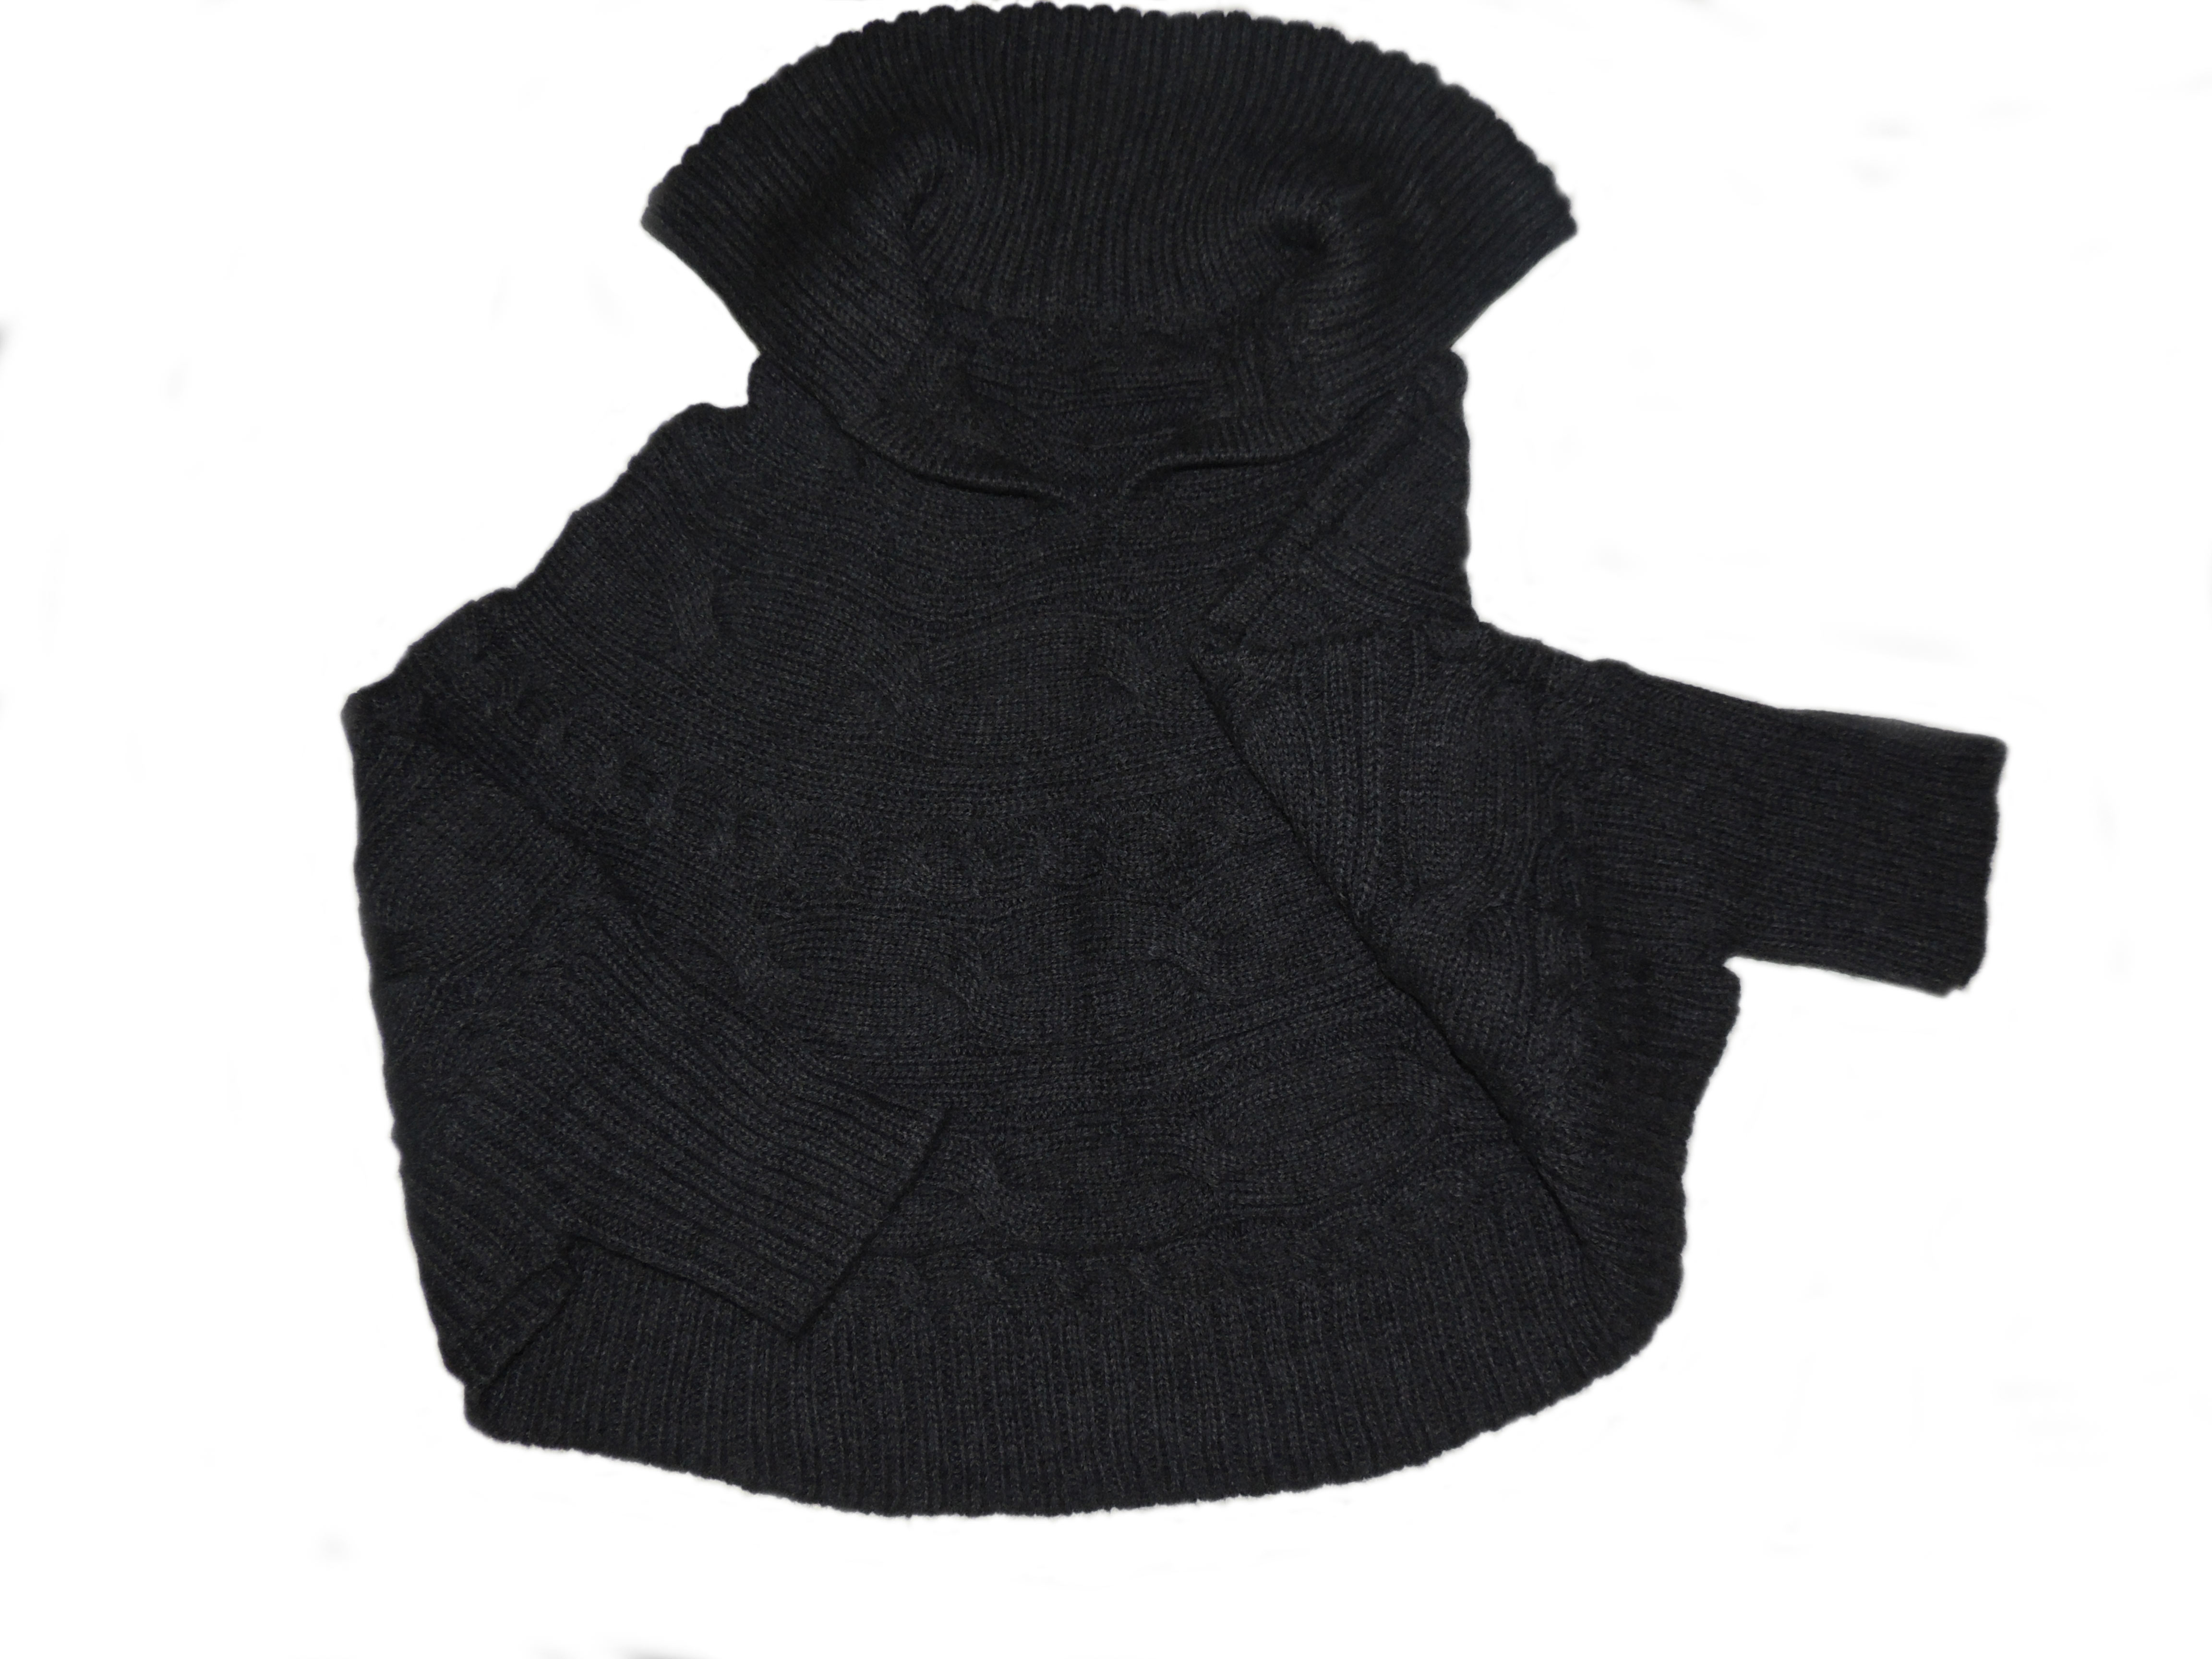 Short hand knitted cape with lapel collar and sleeves.